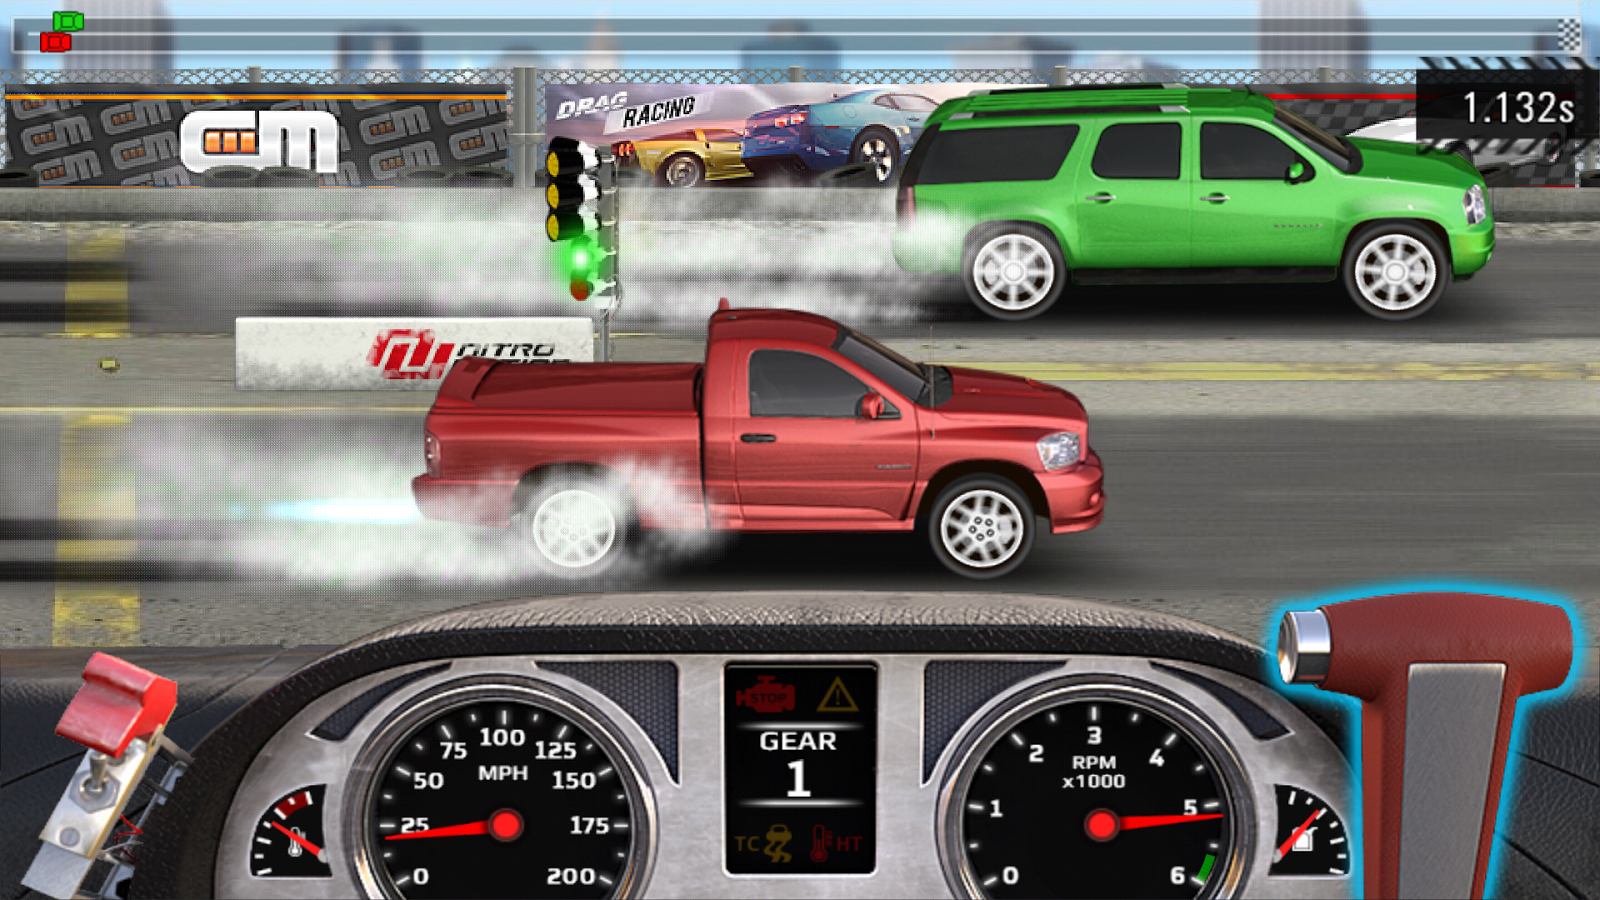 Drag Racing 4x4 v1.0.5 (NEW 2013).apk